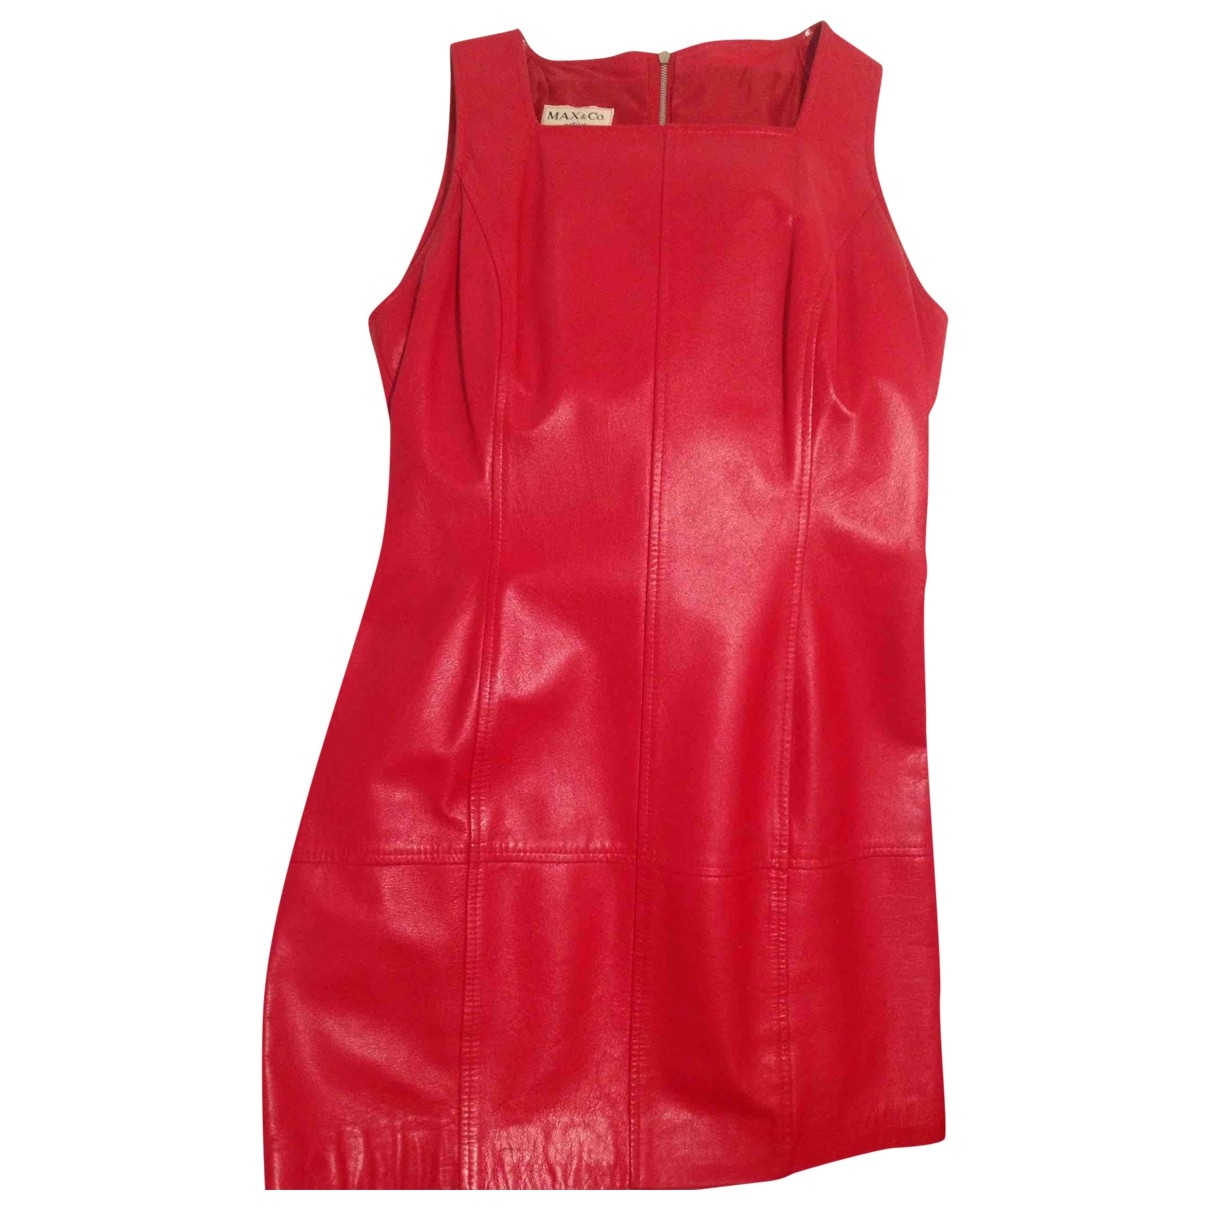 Max & Co \N Red Leather dress for Women 40 IT